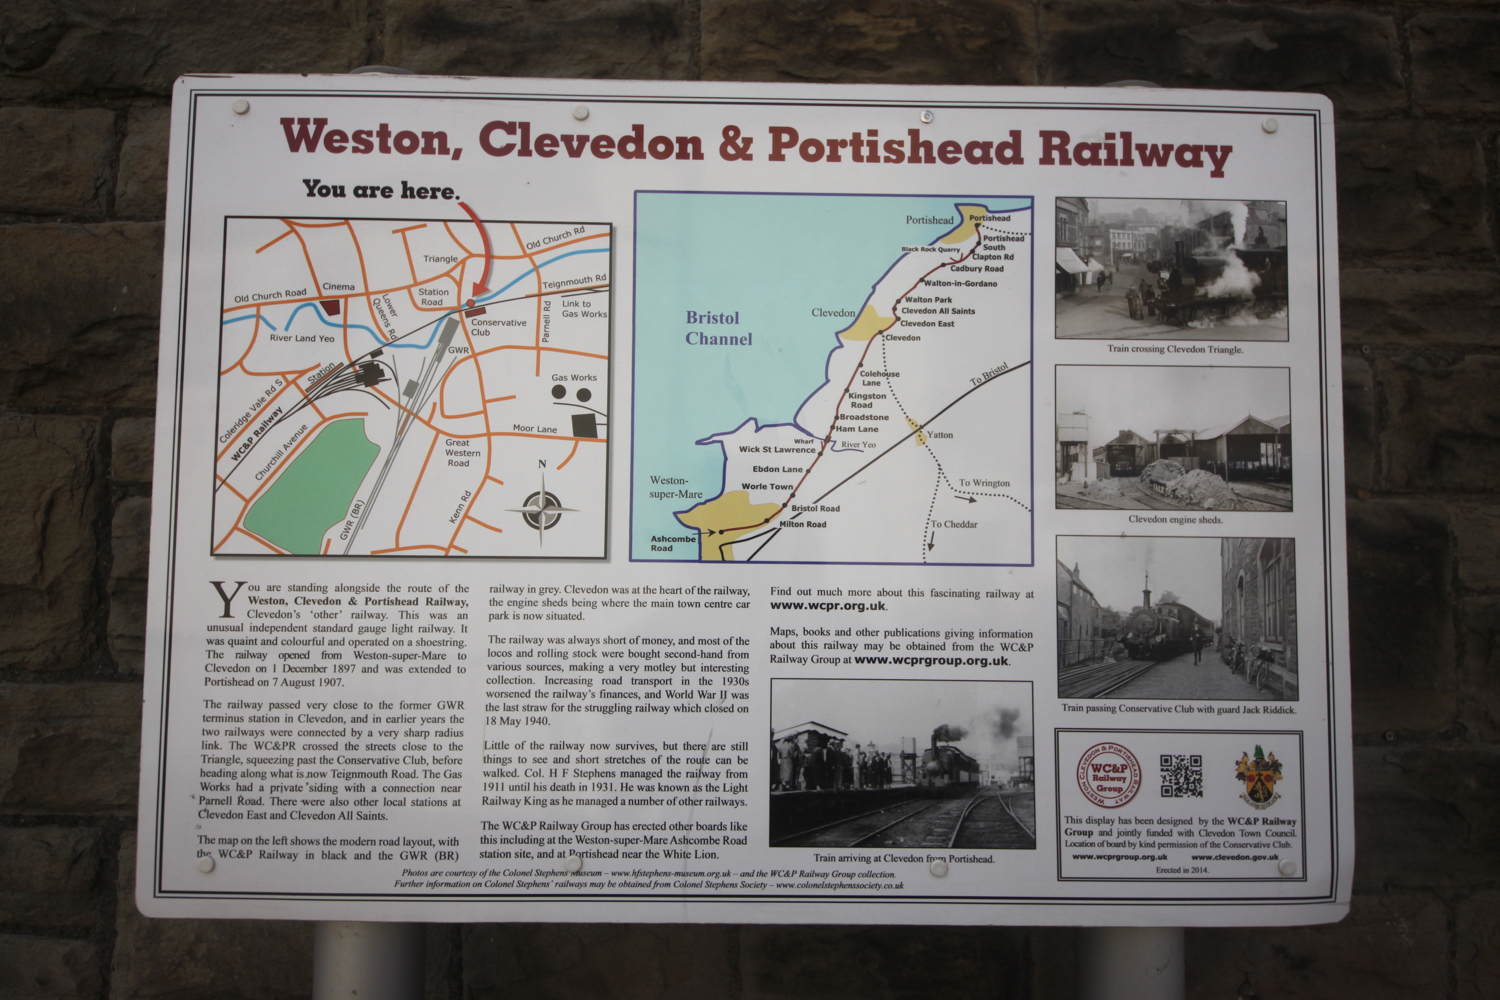 weston, clevedon and portishead railway